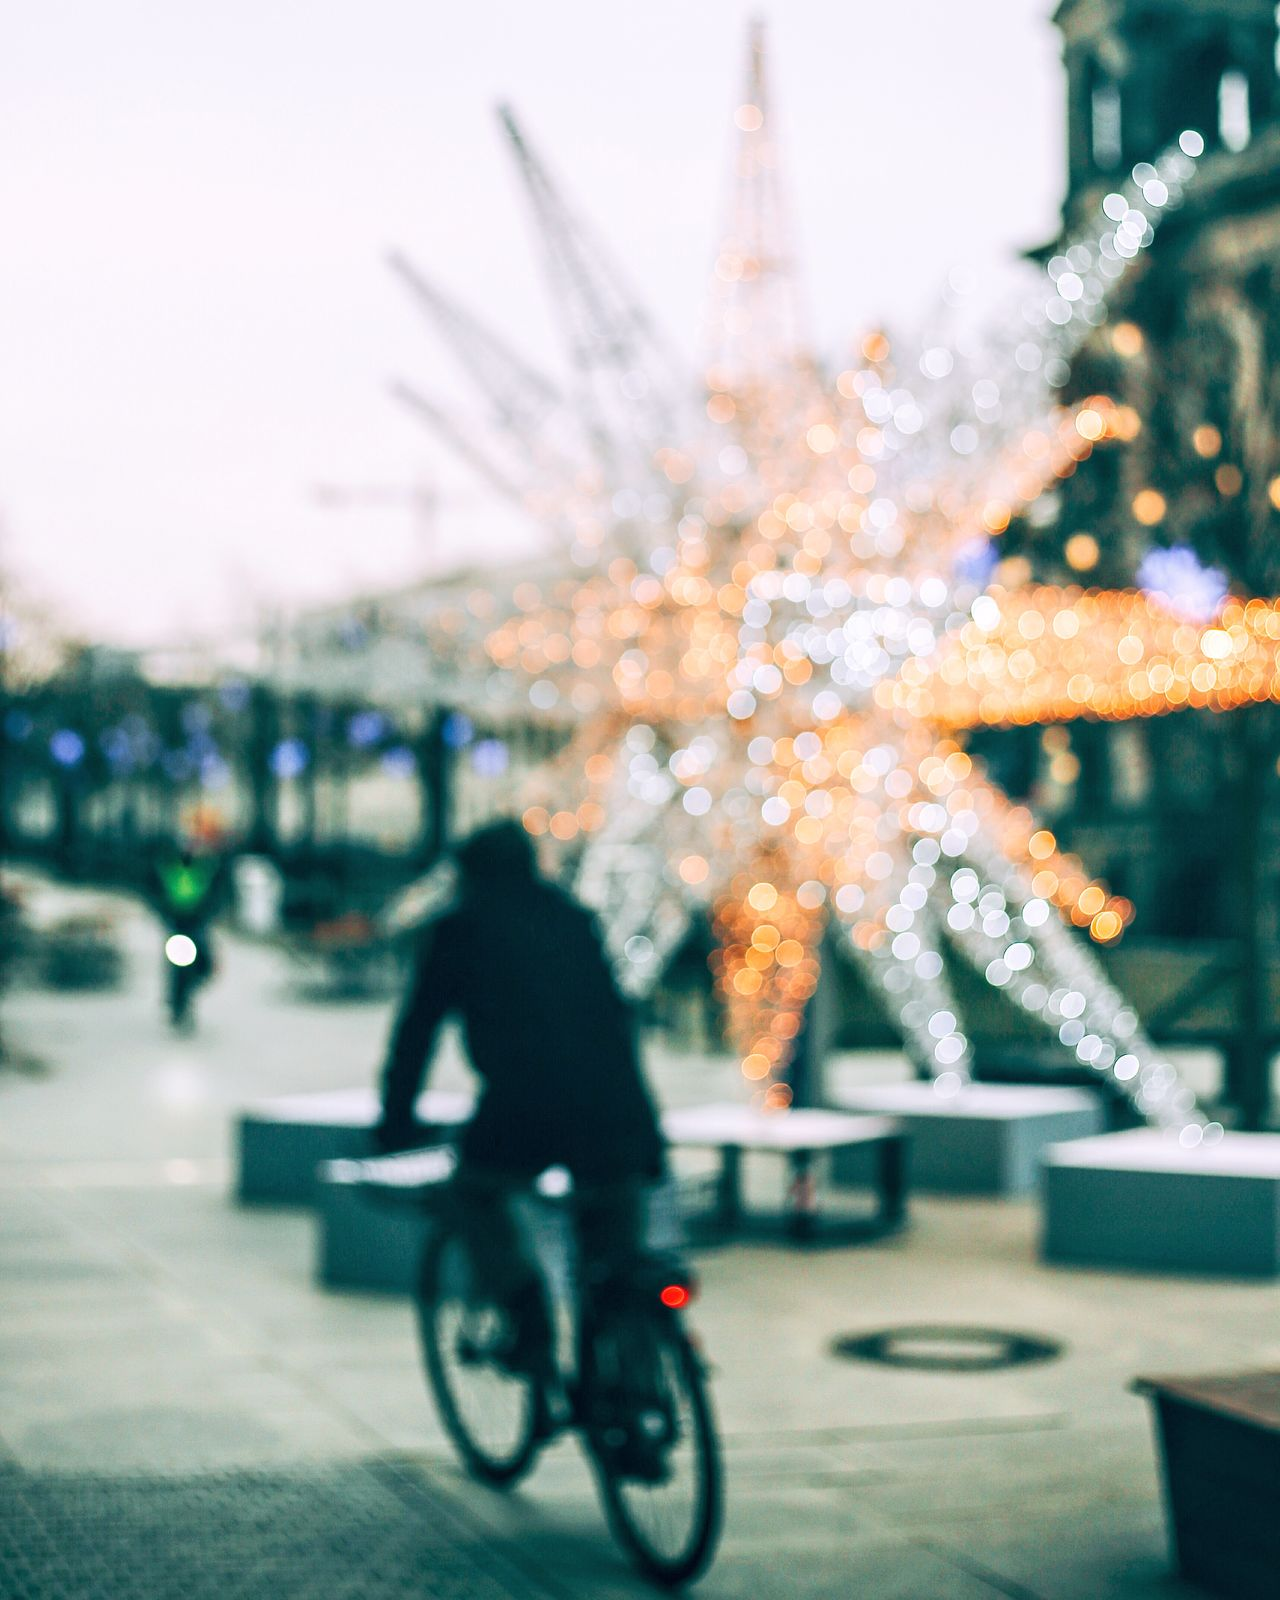 Traveling Home For The Holidays Bicycle Riding Cycling Blurred Motion Motion Defocused Transportation Building Exterior Land Vehicle Speed Outdoors Illuminated Architecture People One Person Day Adult Urbanphotography EyeEm Best Shots EyeEm Deutschland